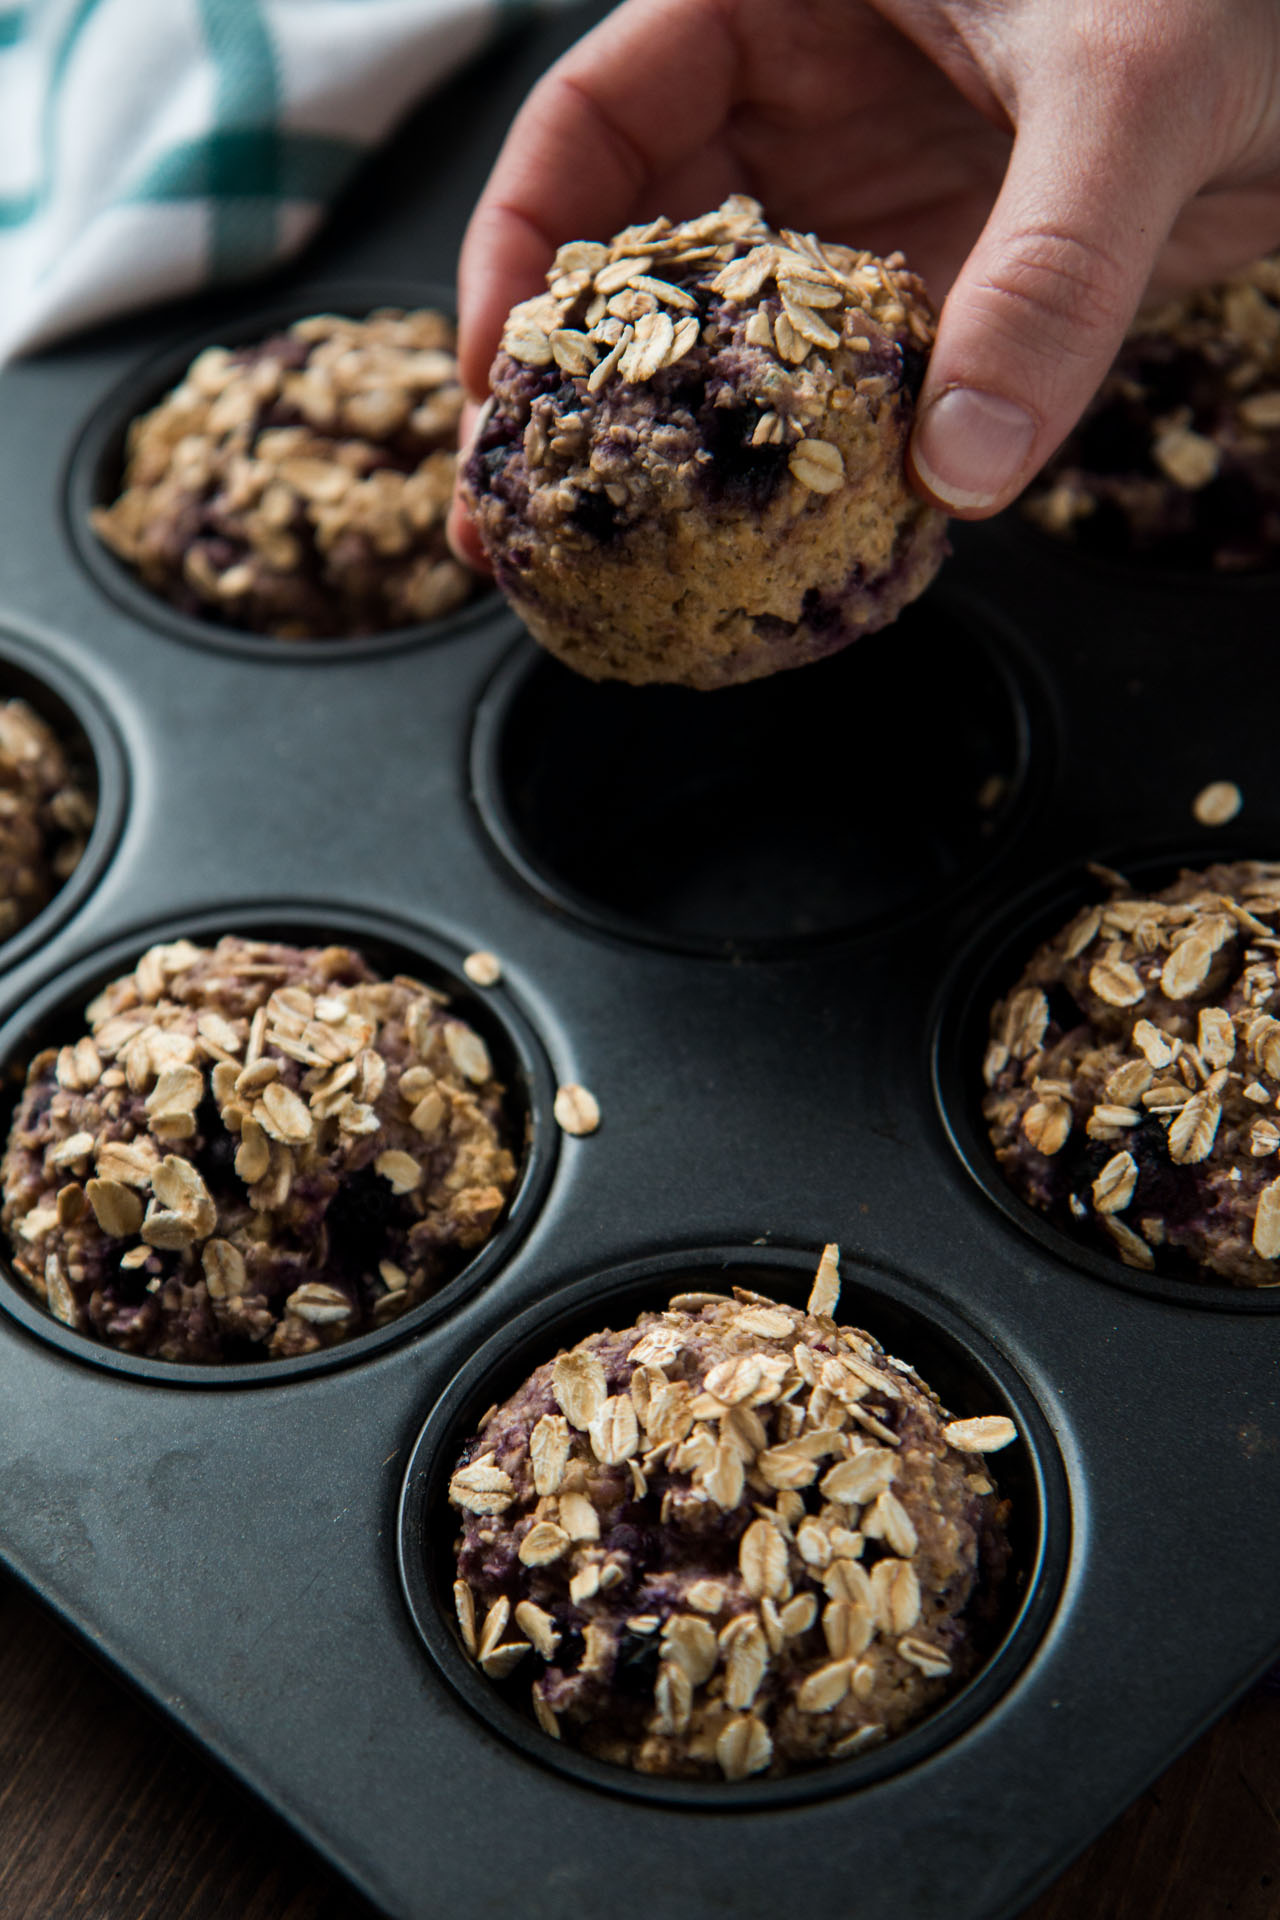 Blueberry Oat Breakfast Muffins Gluten Free Vegan Refined Sugar Free Will Cook For Friends